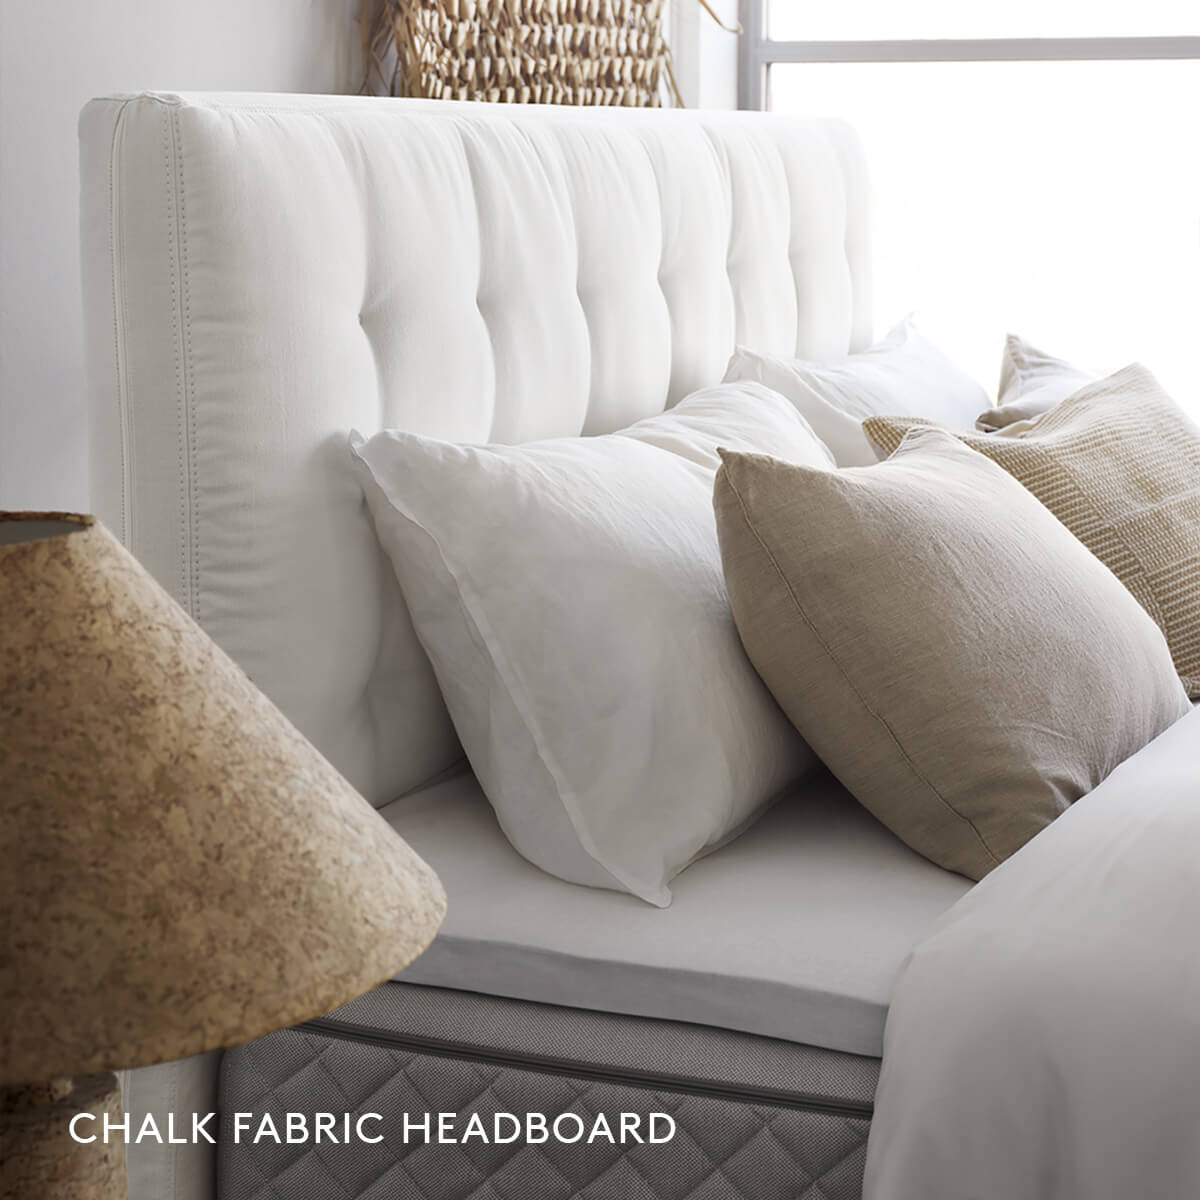 Chalk Fabric Headboard with pillows over DUX bed